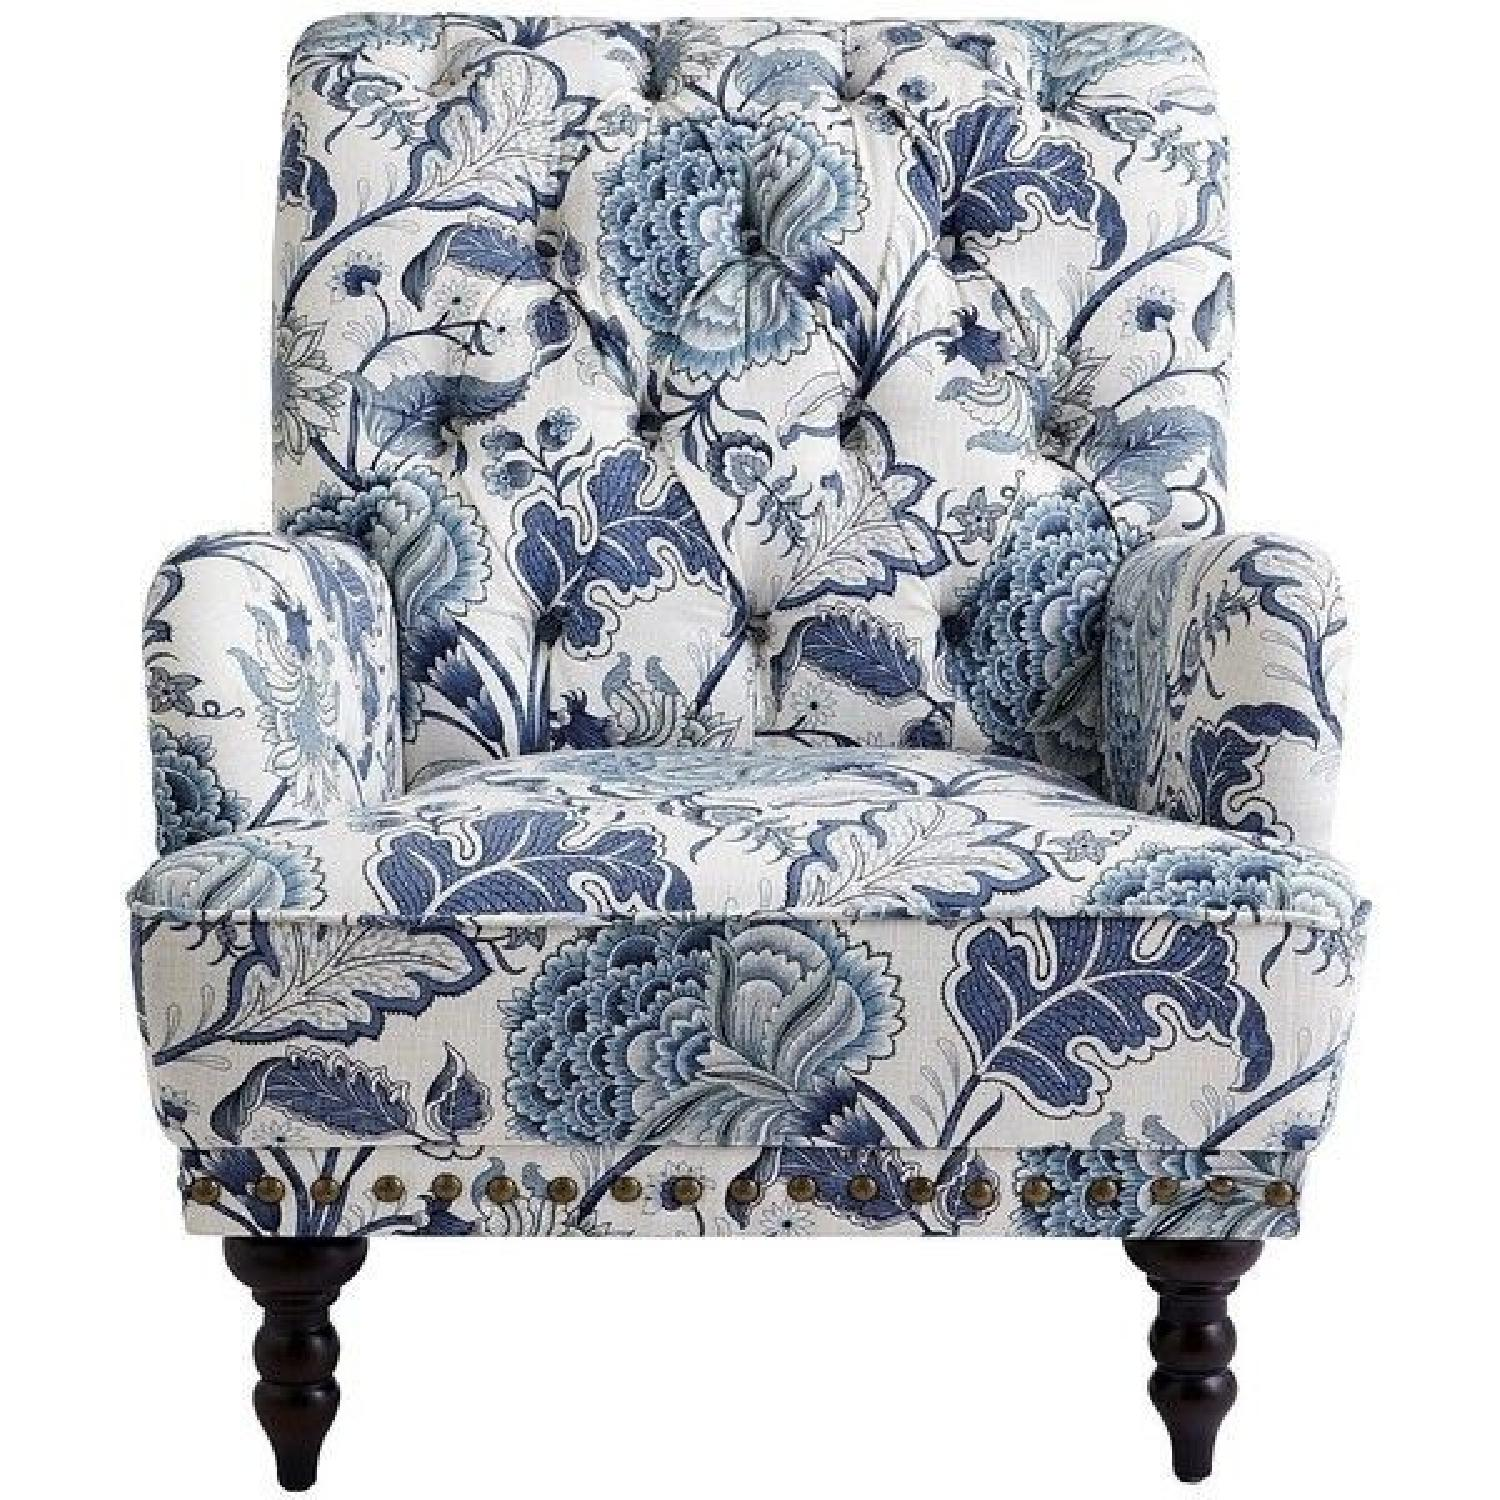 Pier 1 Chas Indigo Blue Floral Chairs - image-0